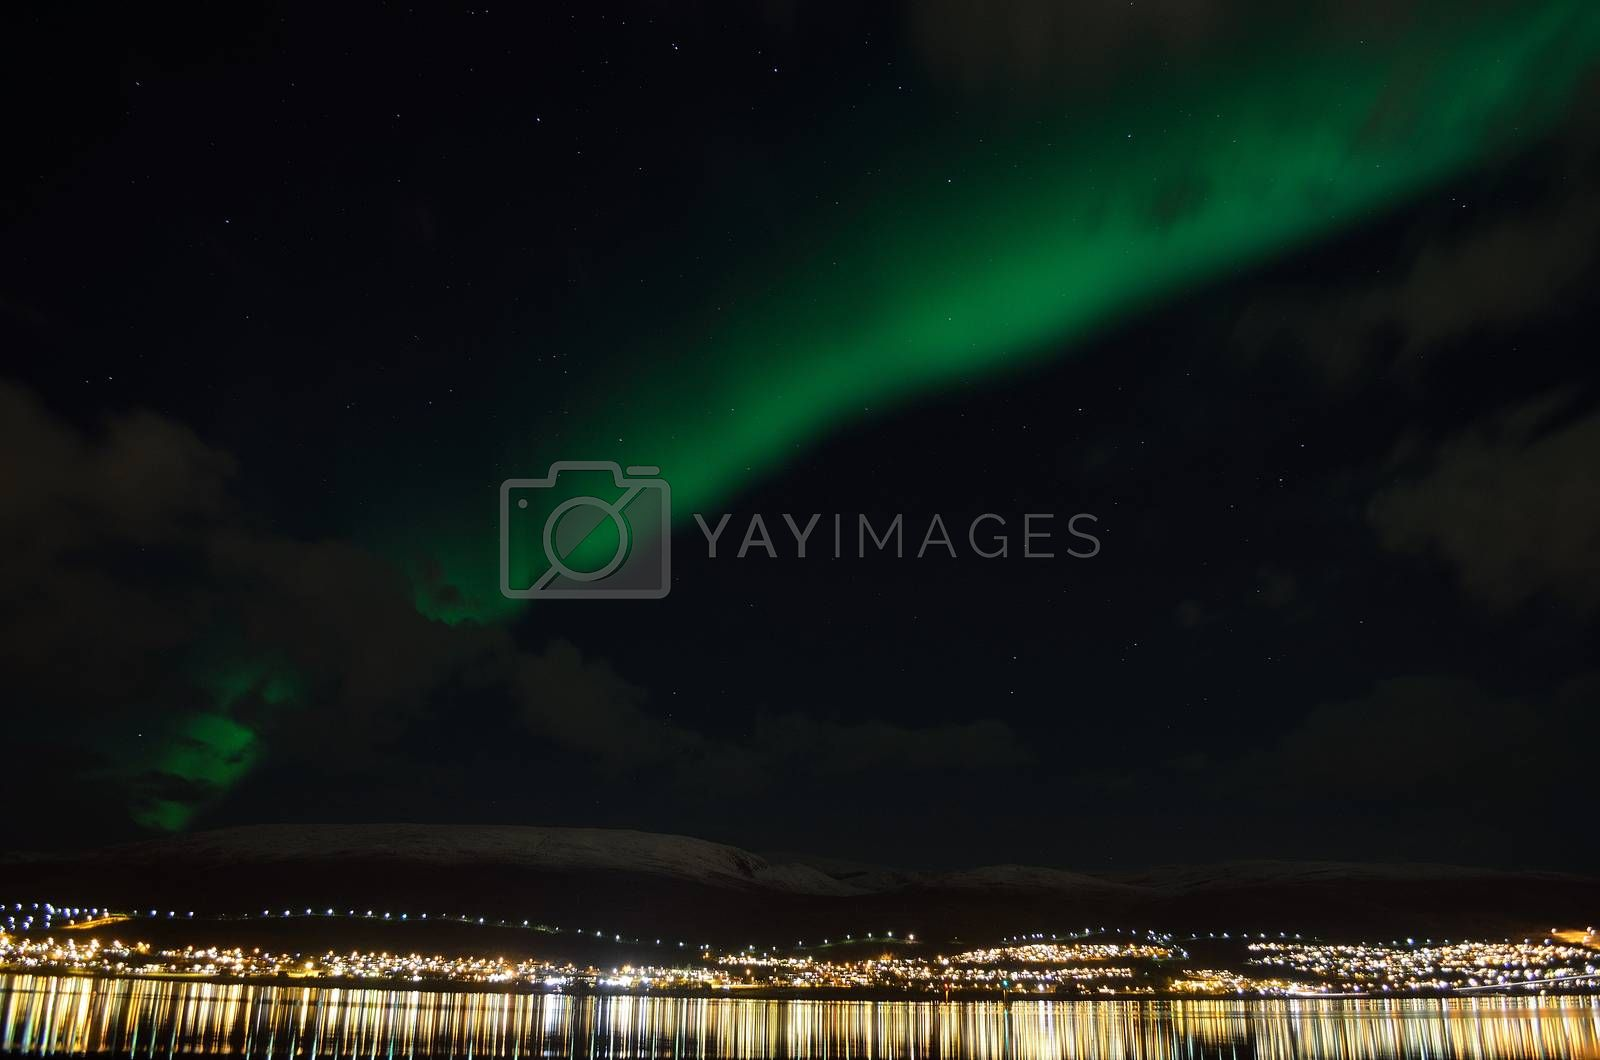 aurora borealis over arctic circle settlement reflecting in fjord water over snowy mountain